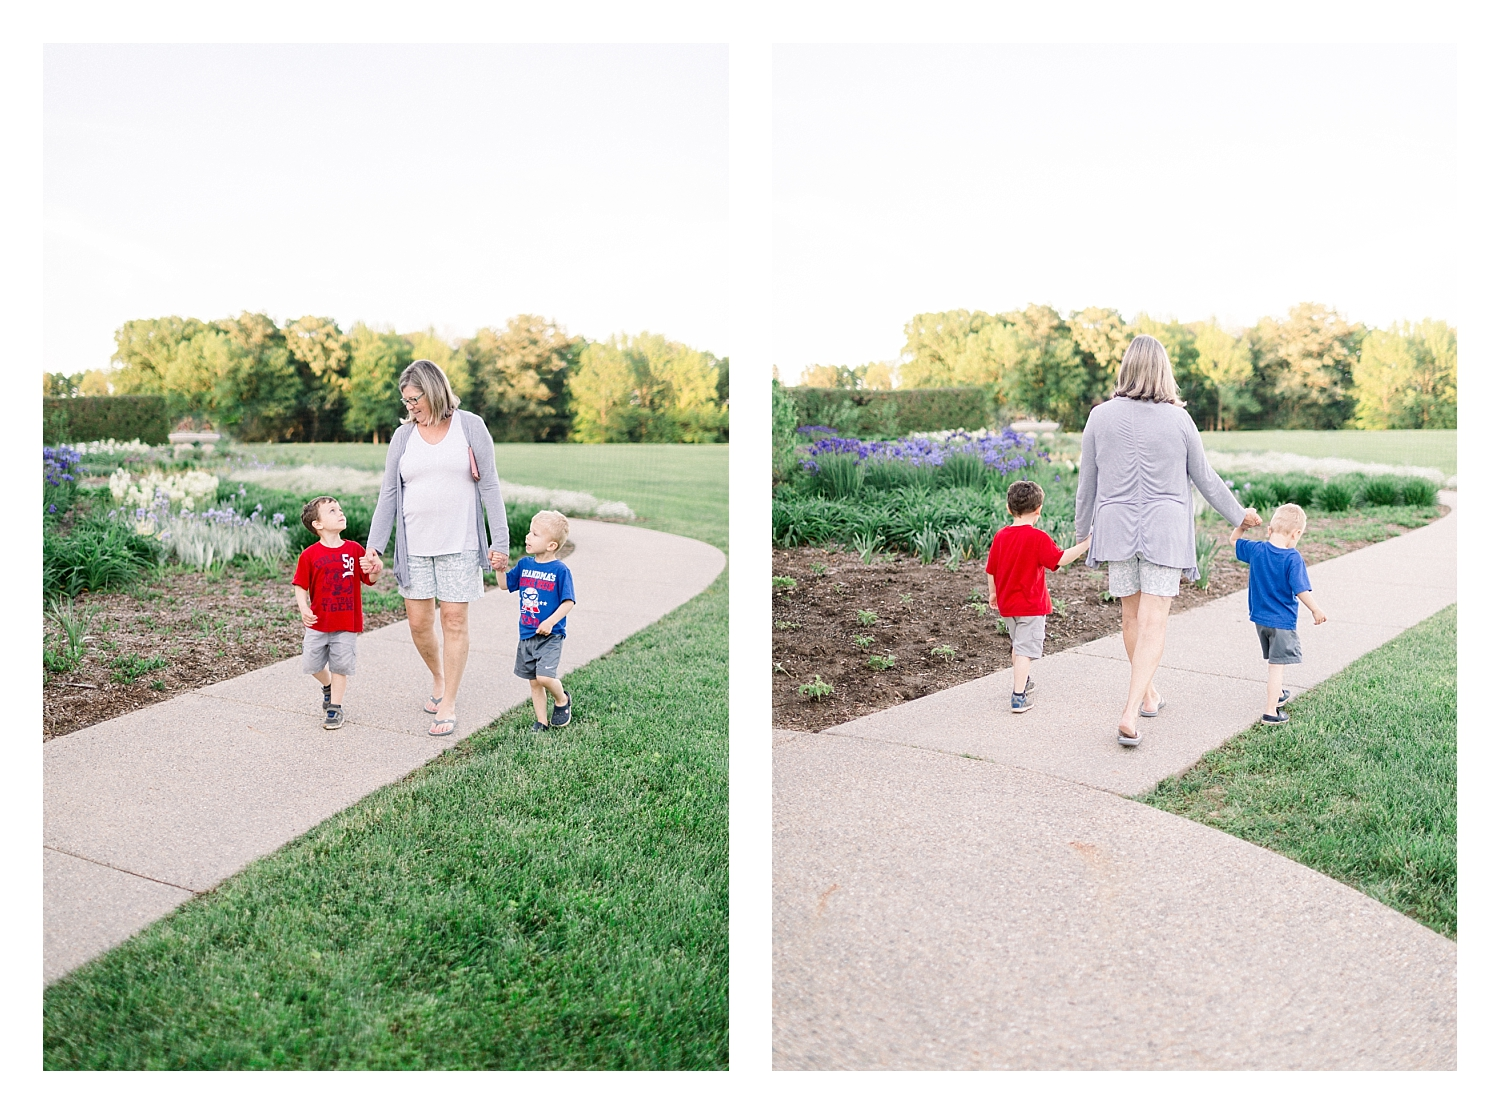 Wisconsin-Family-Photographers-Elle-x-Troy-Photography-The-Bopp-Family-Robert-Allerton-Park-Monticello-Illinois_0033.jpg